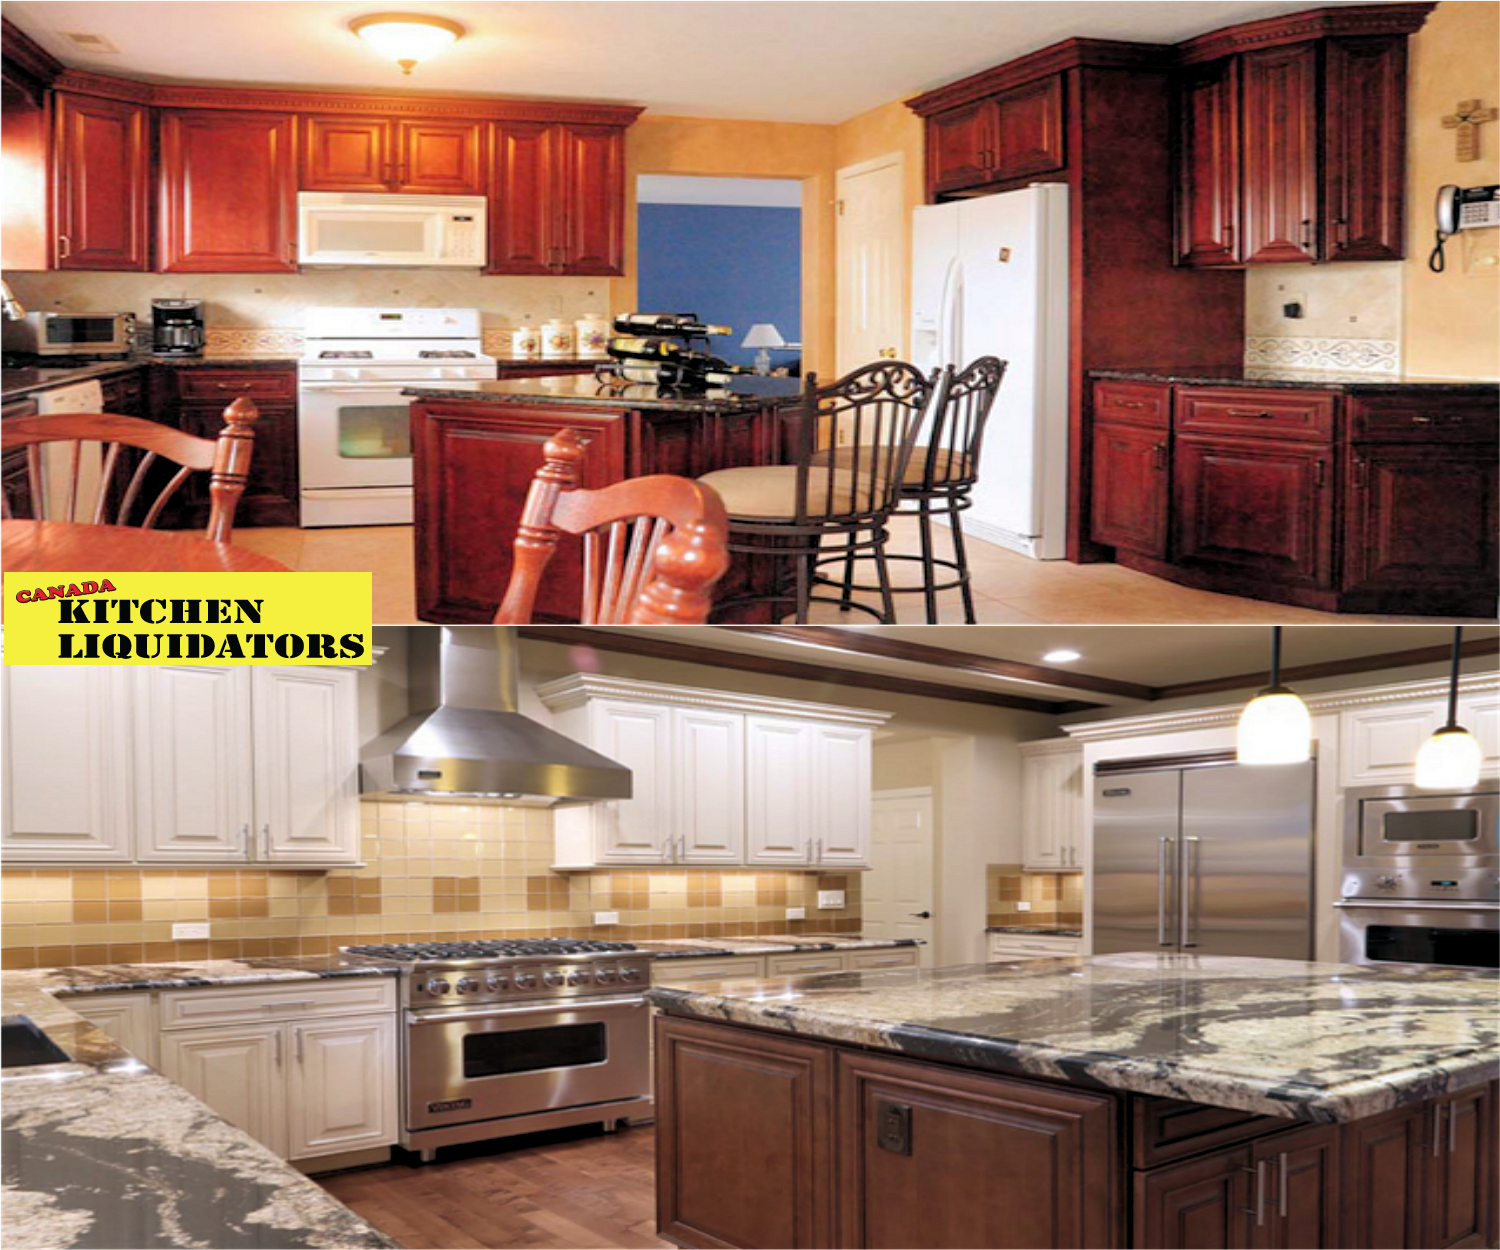 Buy Direct In Canada At Canada Kitchen Liquidators Our Custom Kitchen Cabinets Are Offered I Kitchen Cabinets Online Kitchen Cabinets Custom Kitchen Cabinets